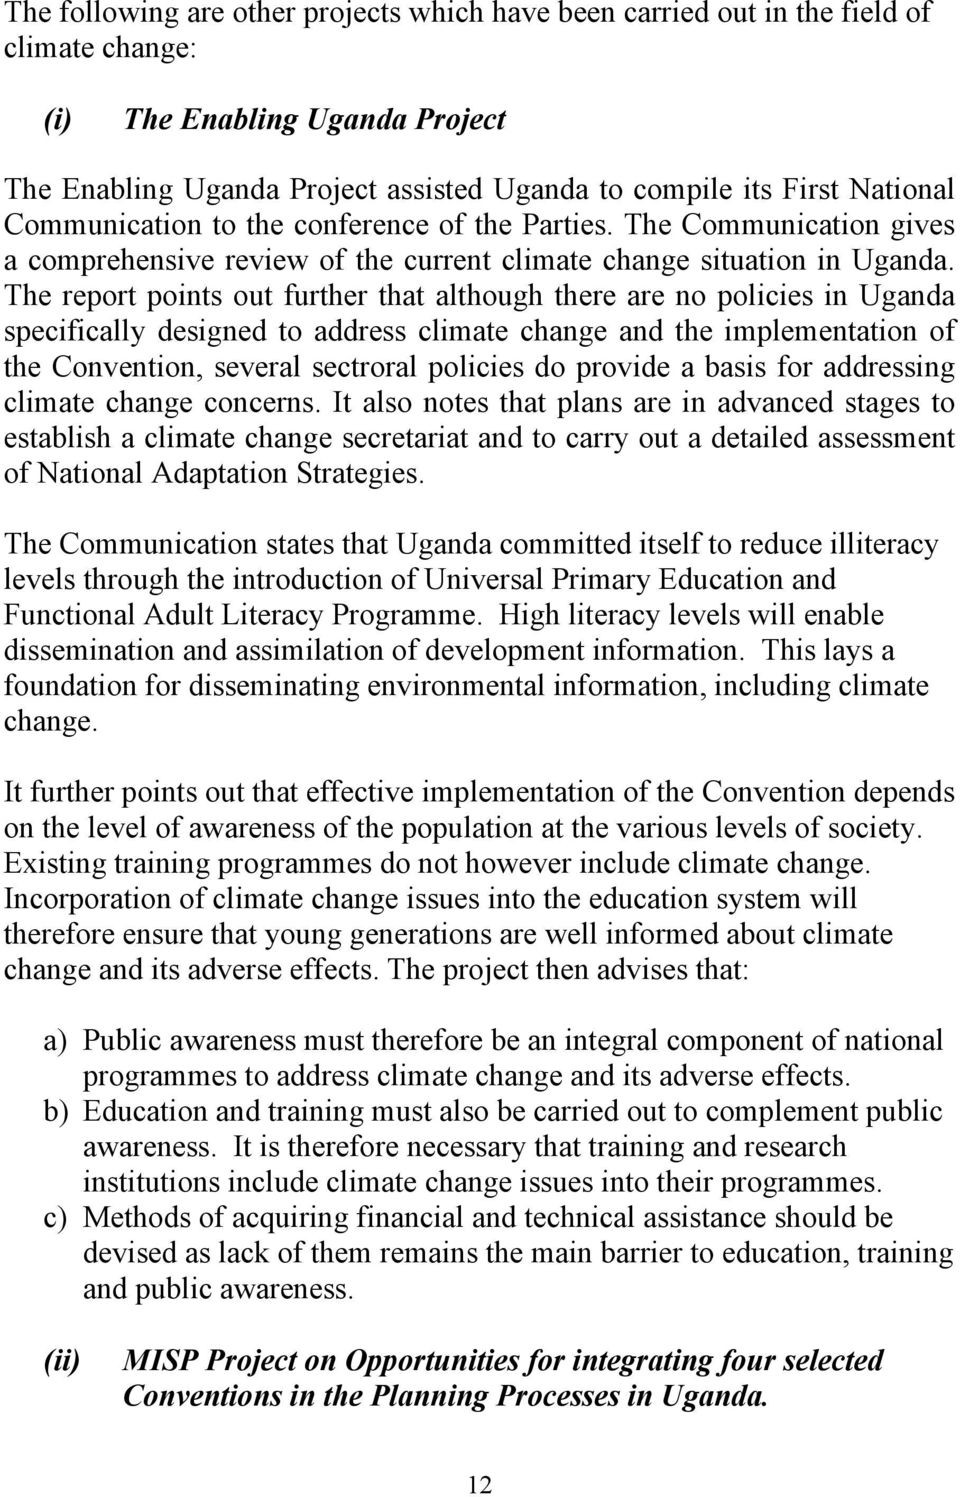 The report points out further that although there are no policies in Uganda specifically designed to address climate change and the implementation of the Convention, several sectroral policies do